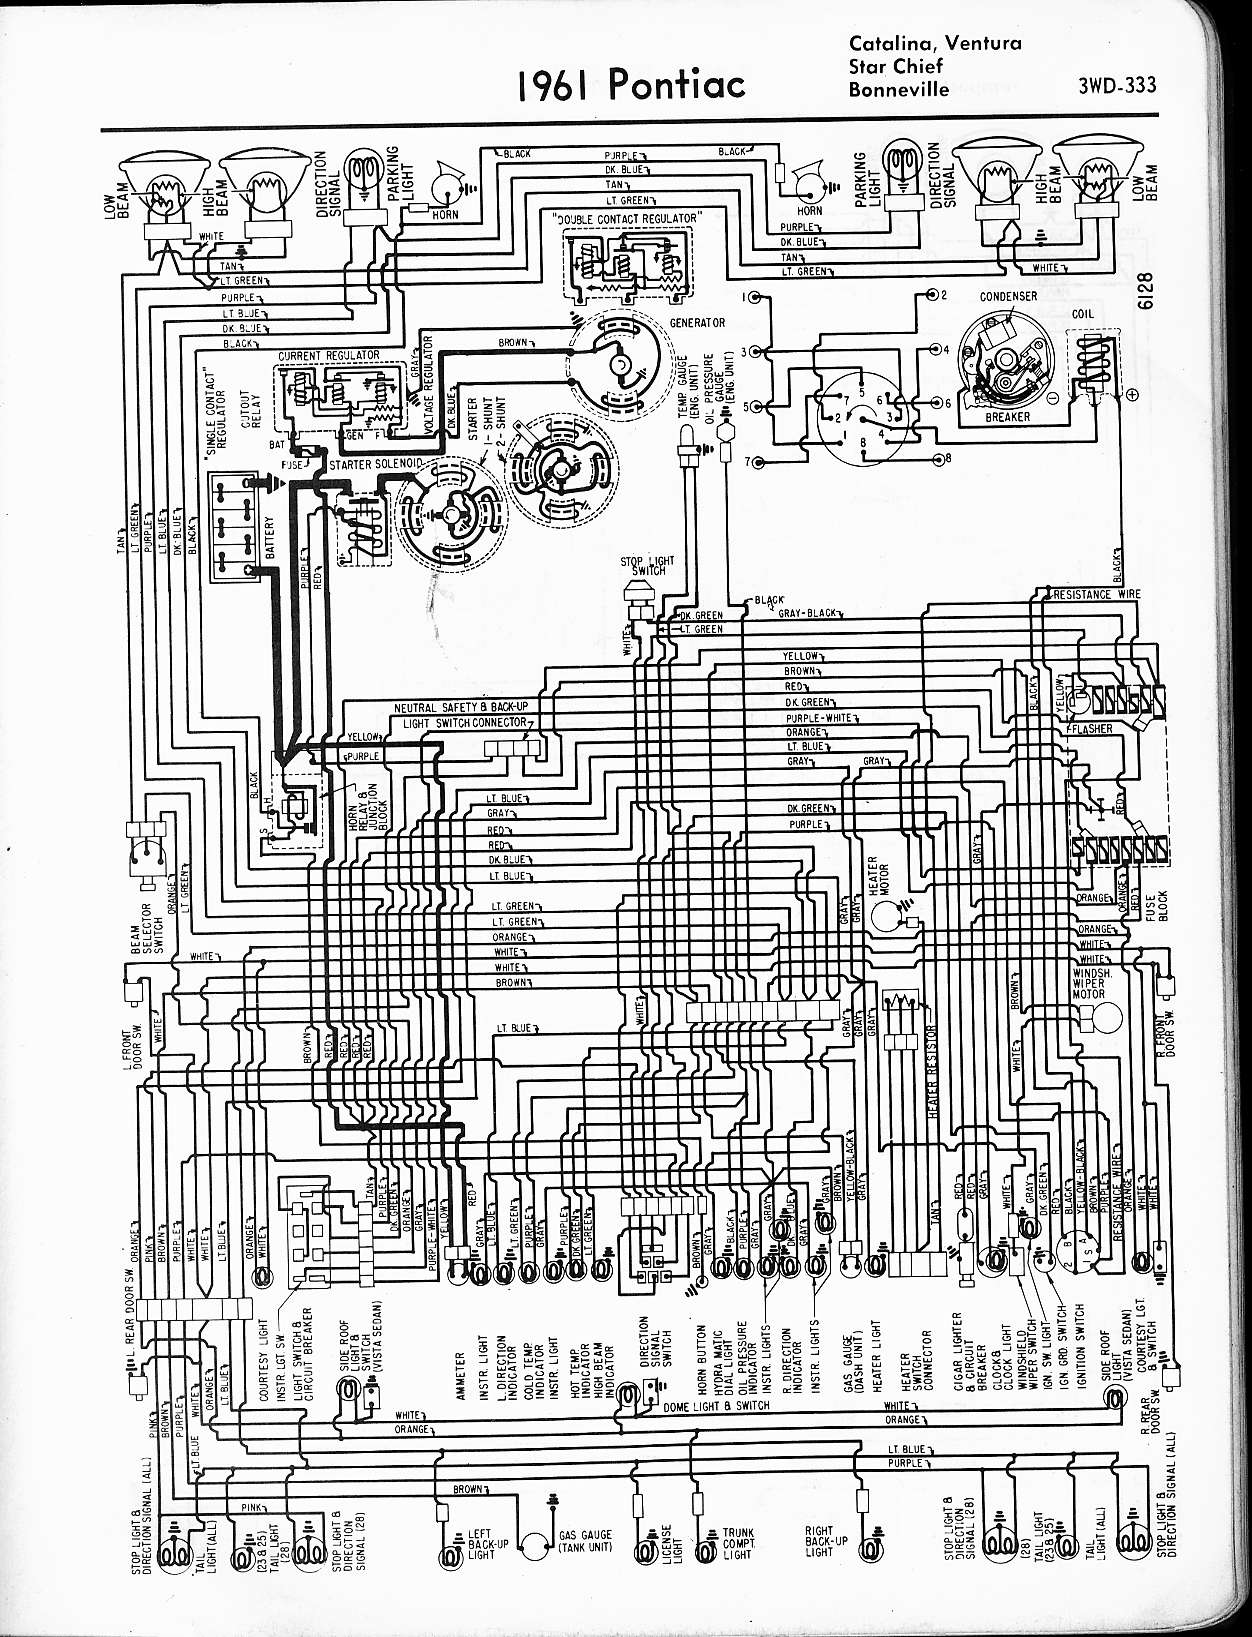 1966 Pontiac Lemans Wiring Diagram Private Sharing About 1967 Tempest Wallace Racing Diagrams Rh Wallaceracing Com